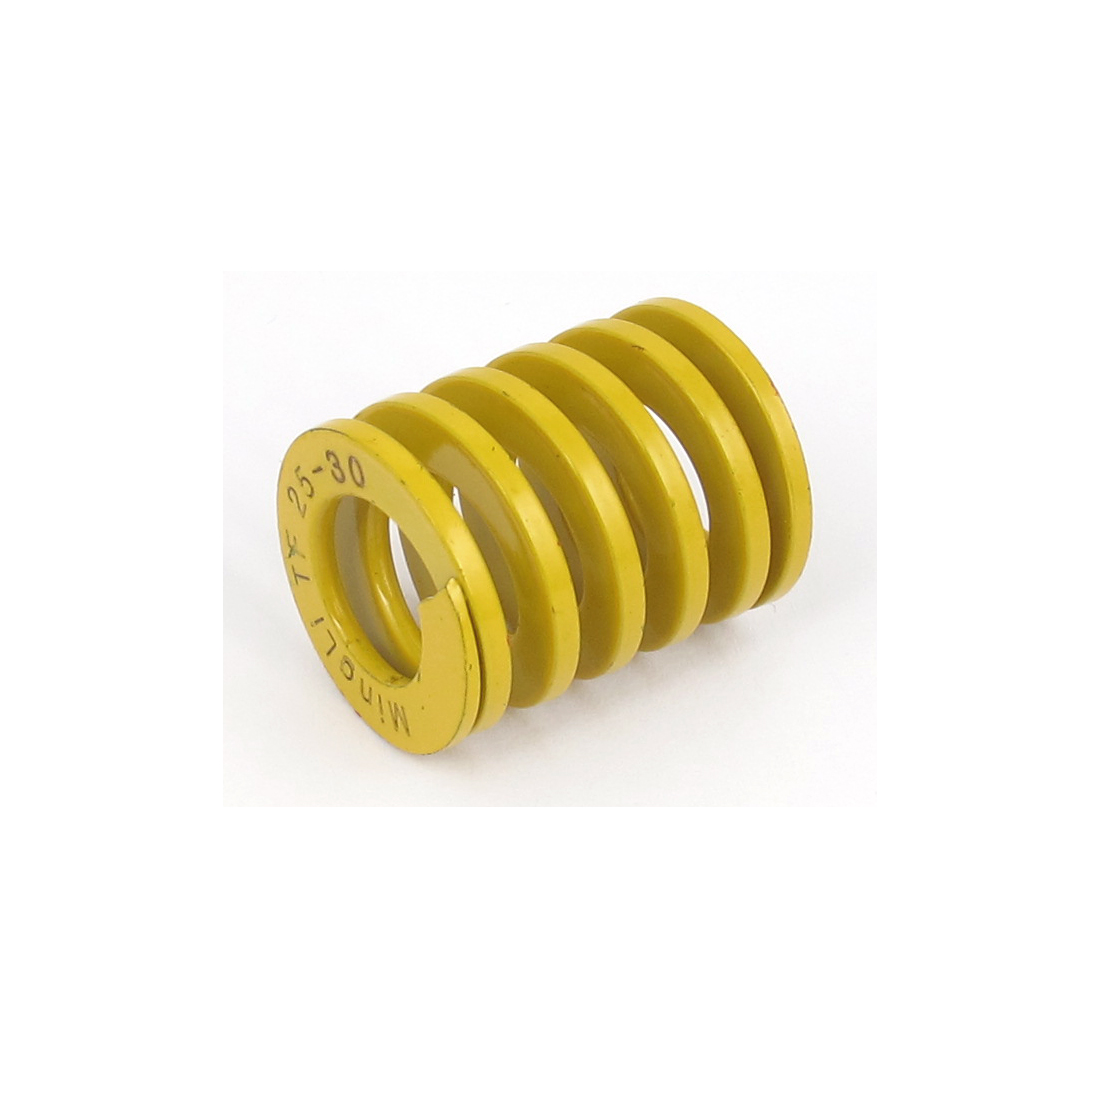 25mm OD 30mm Long Lightest Load Spiral Stamping Compression Die Spring Yellow